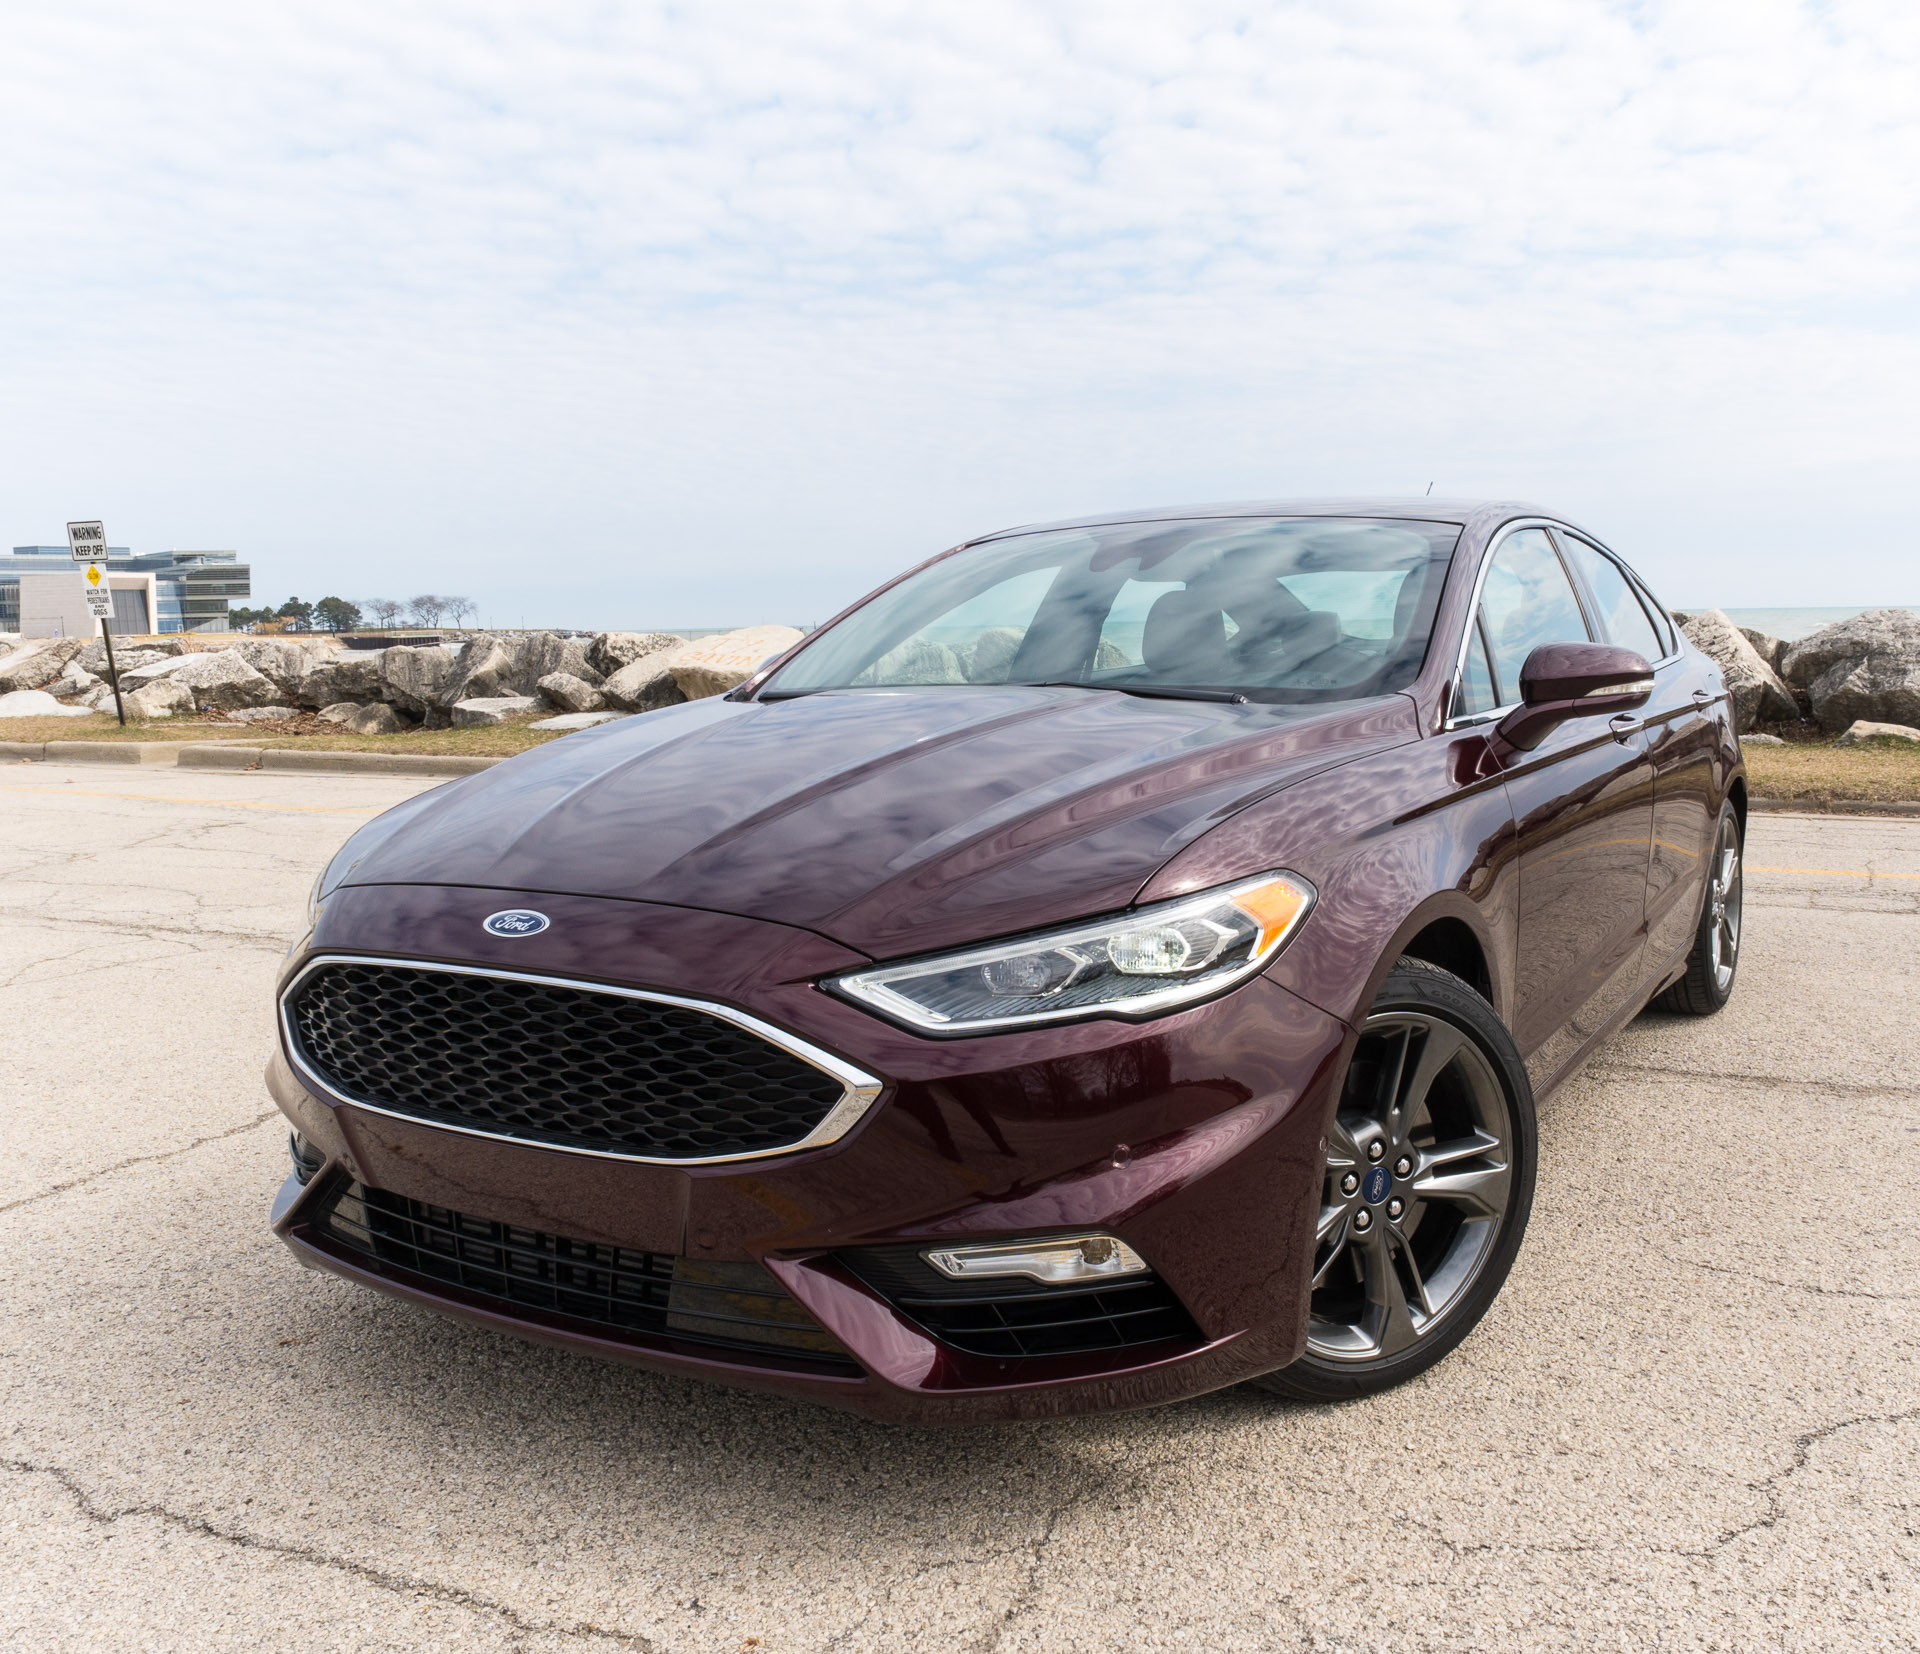 Perfect 2017 Ford Fusion Sport Review Daily Driver With A Dash Of Dynamite  95 Octane